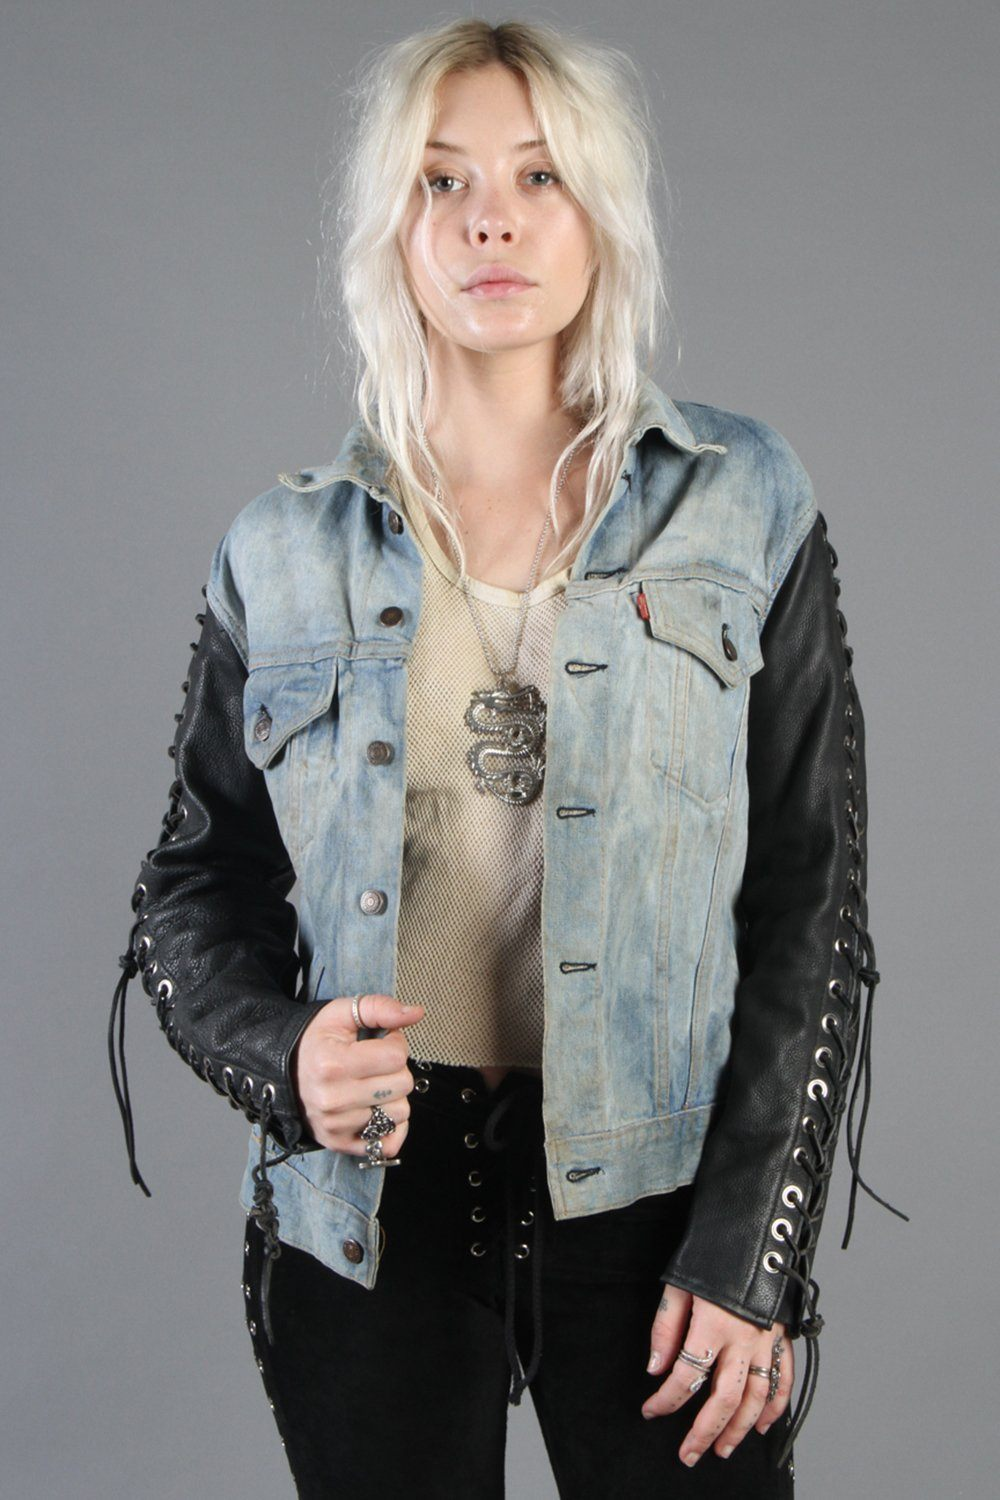 Hell Bent Leather Customized 1970s Levi's (Big E) Denim Jacket w/ Grommeted Leather Sleeves